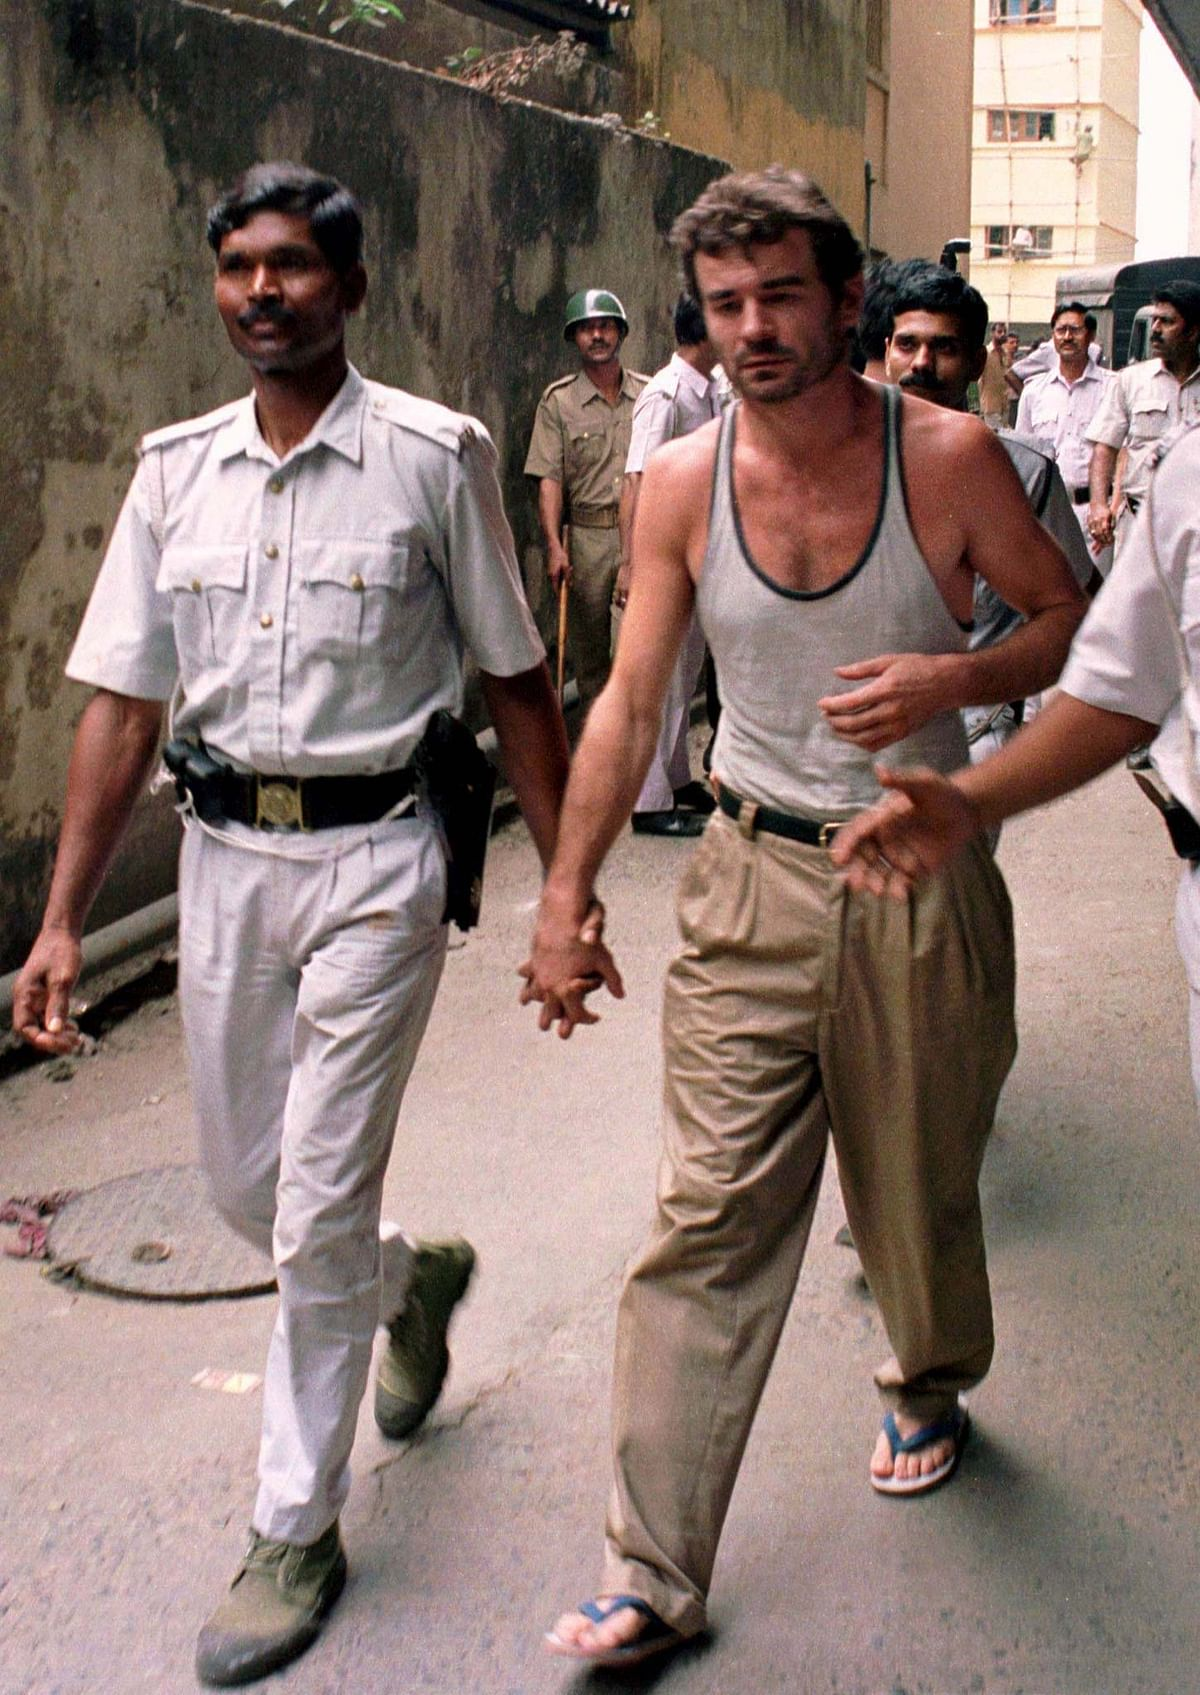 Olech Gaidach (R),  along with four other Lativian crew members and former British armyman and one-time MI6 agent Peter Bleach, were imprisoned for their involvement in the  Purulia arms drop case. They were pardoned by the Vajpayee government. (Photo: Reuters)